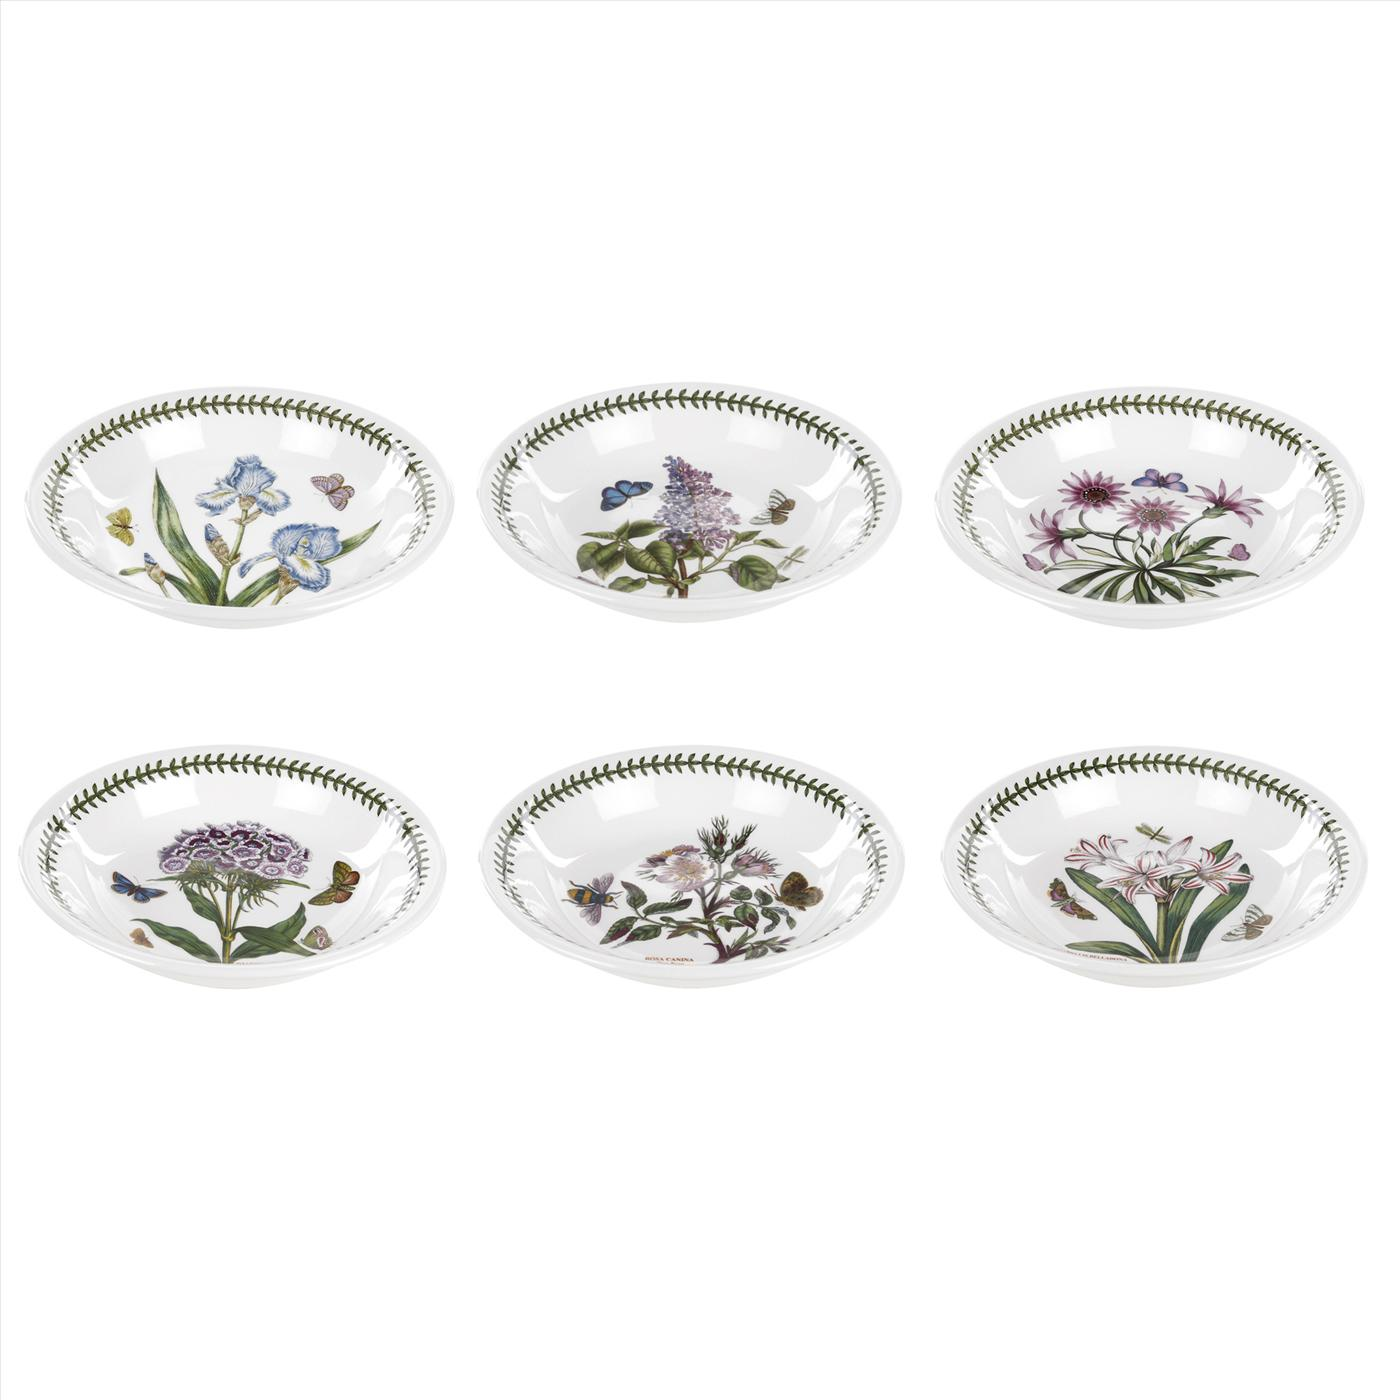 Portmeirion Botanic Garden Set of 6 Pasta/Low Bowls Assorted Motifs image number 0